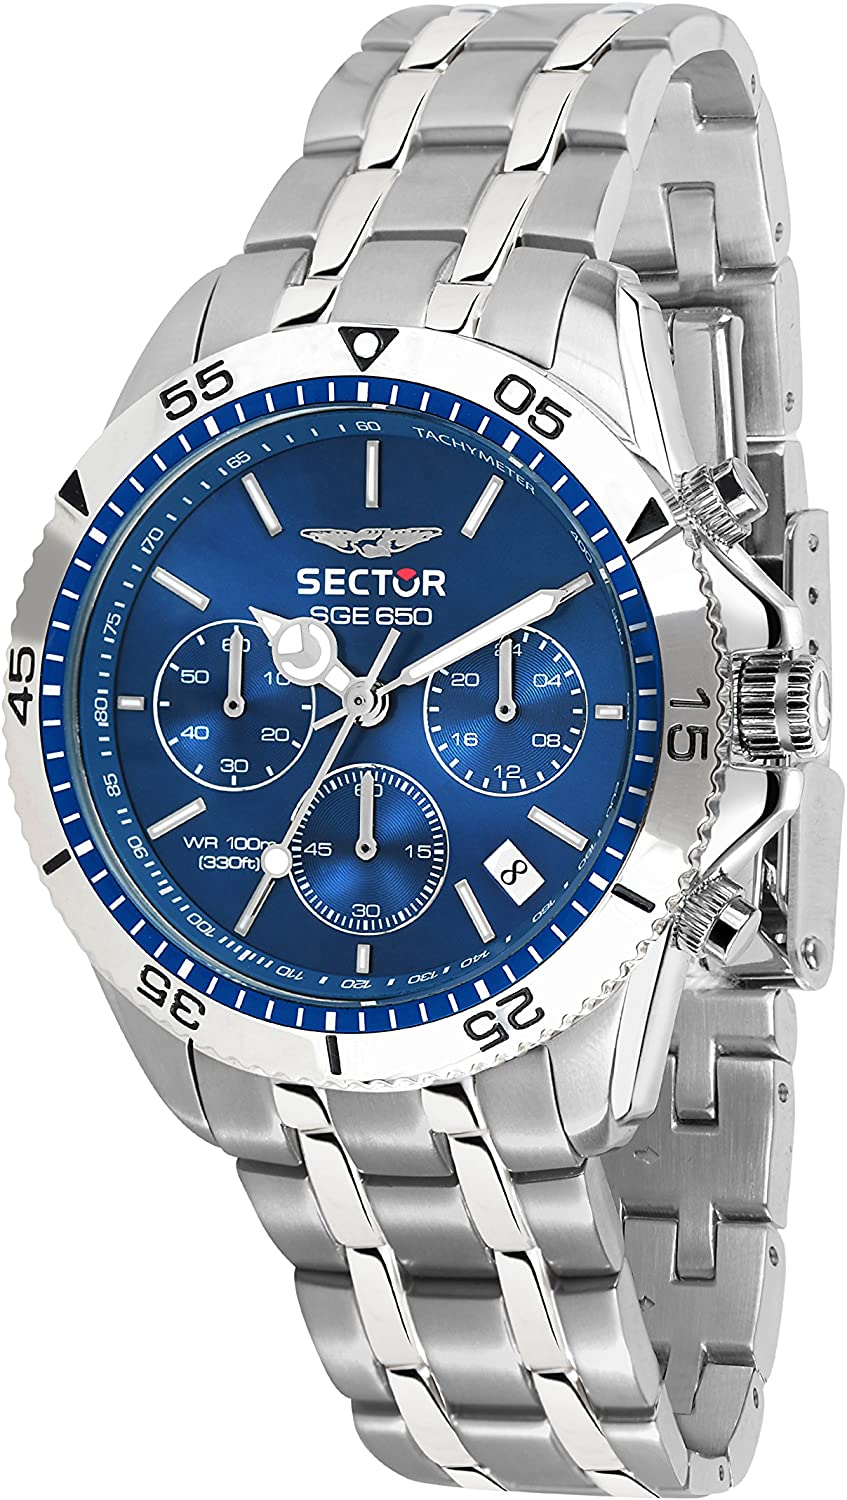 Sector No Limits Men's Sge 650 Analog-Quartz Sport Watch with Stainless-Steel Strap, Silver, 18 (Model: R3273962001)